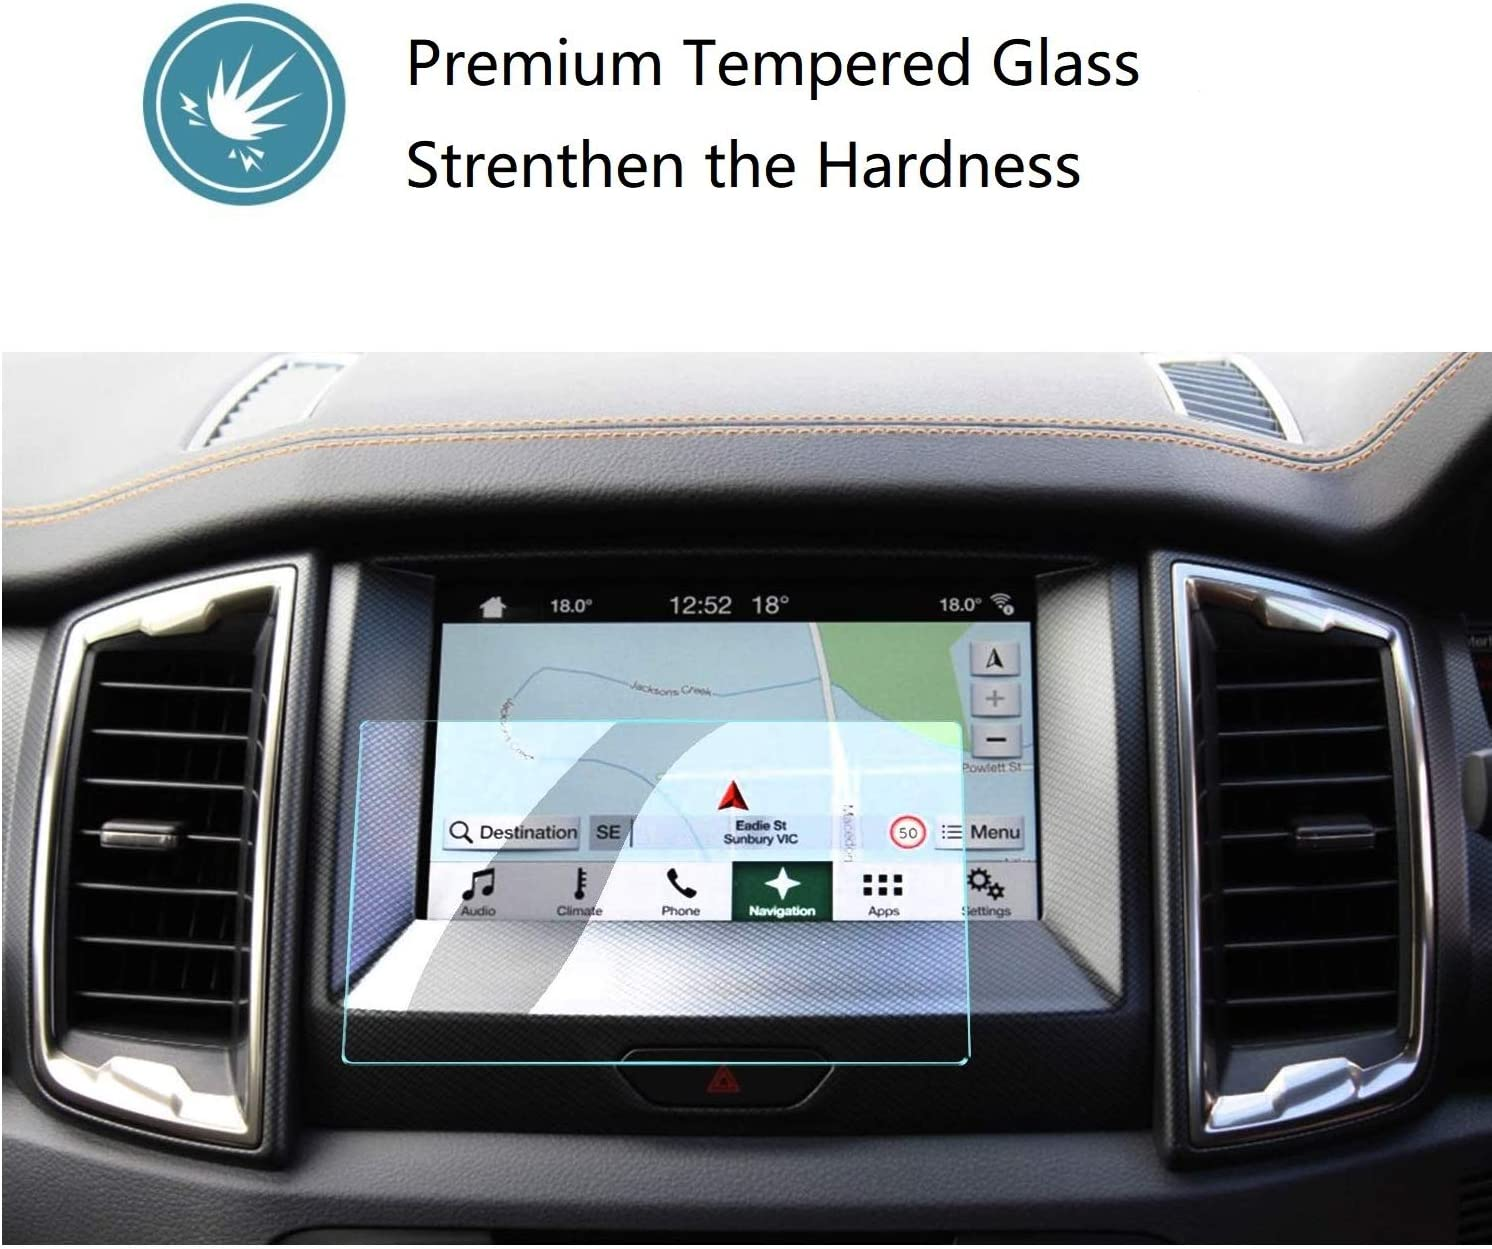 "ZFM Tempered Glass Screen Protector Compatible with Ford Edge 2019 2020,9H Hardness,High Definition,Protecting Ford SYNC3 8/"" Car Center Touch Screen"